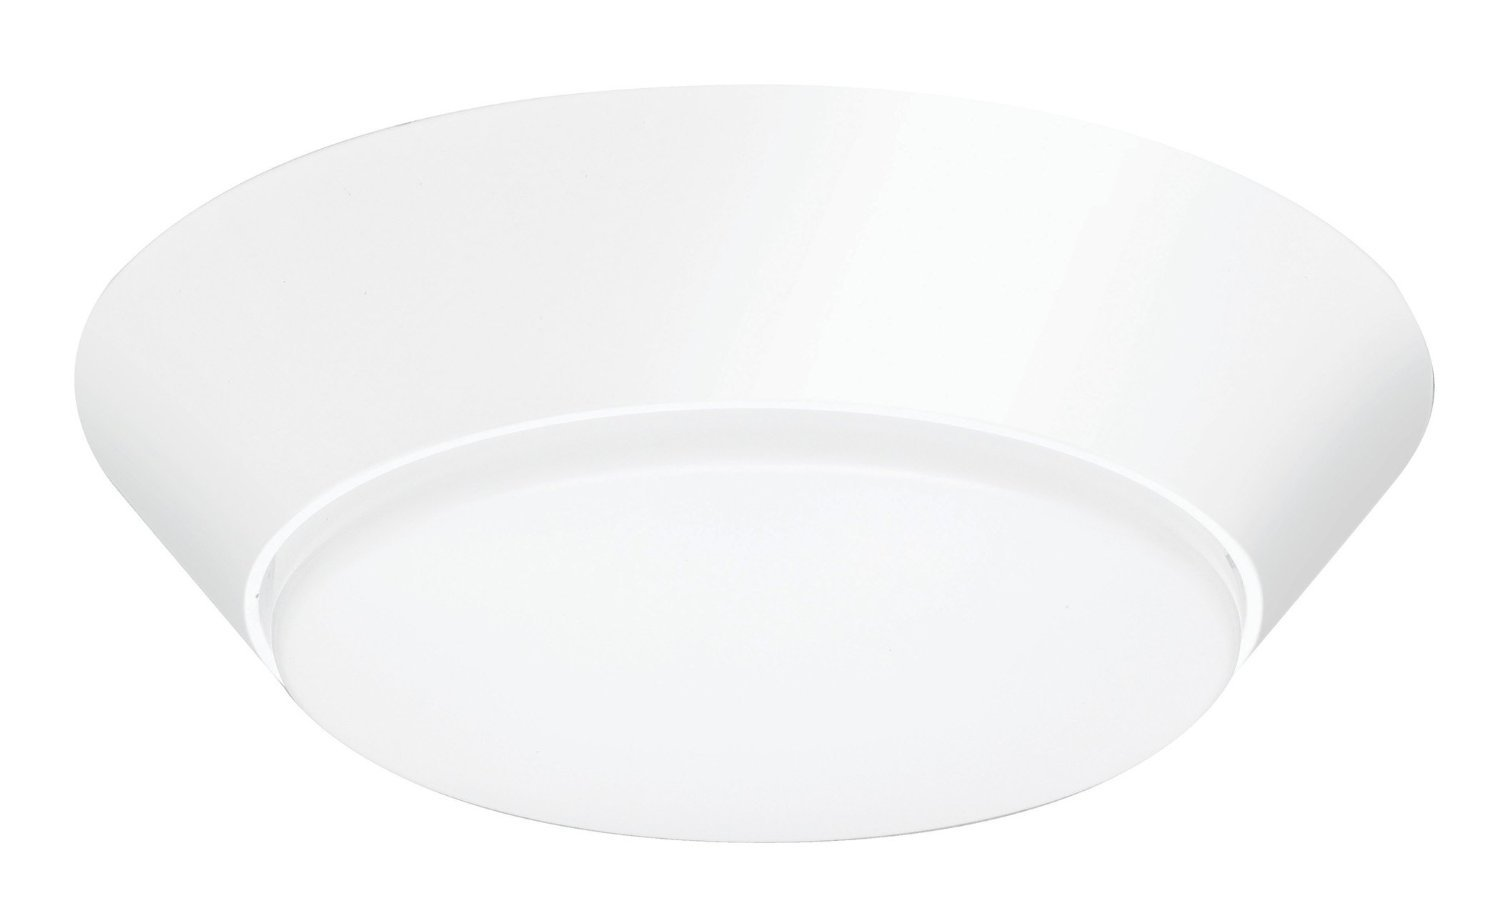 Lithonia Lighting Contractor Select 7 inch Round LED Flush Mount Thin Ceiling Light White 3000K Dimmable